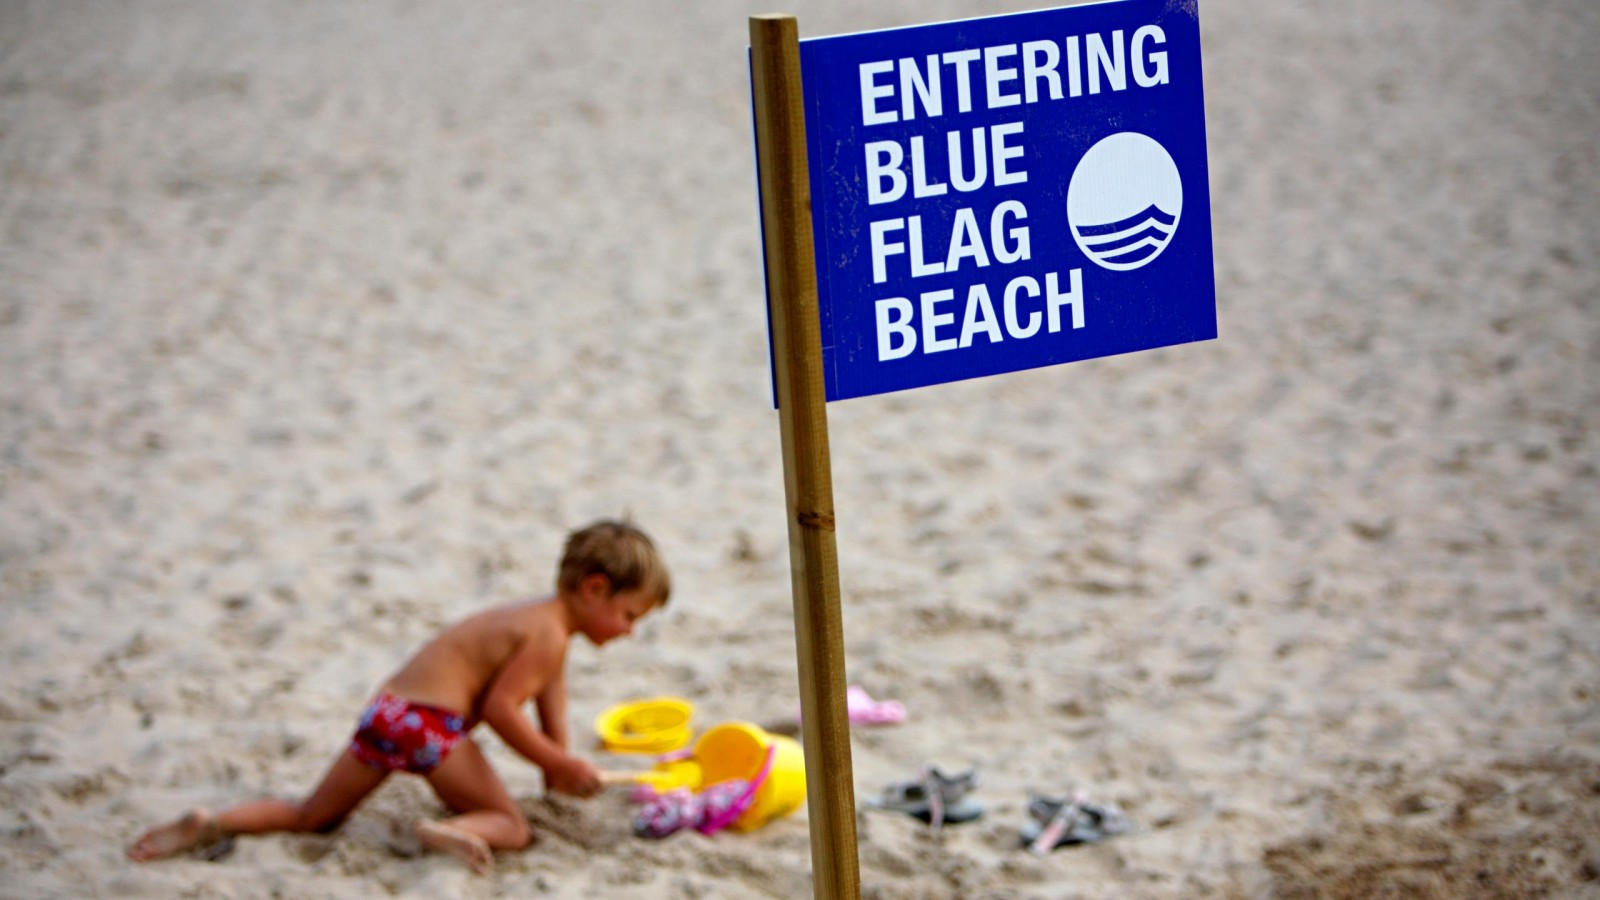 blue-flag-beach-sign-014-1600x900